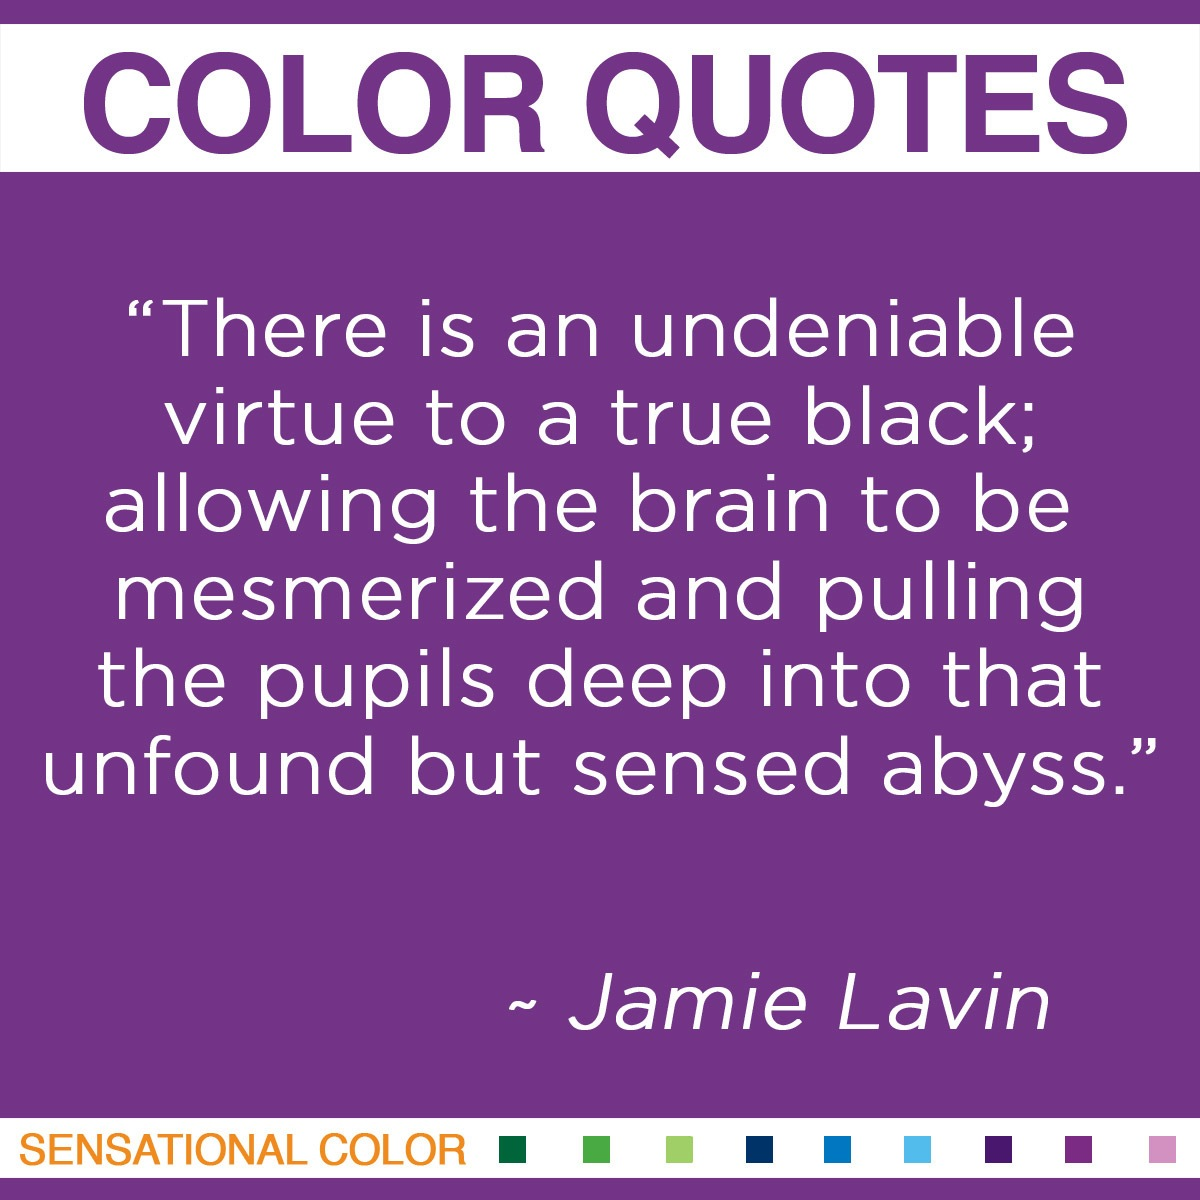 Lavin Quote About Color 28A